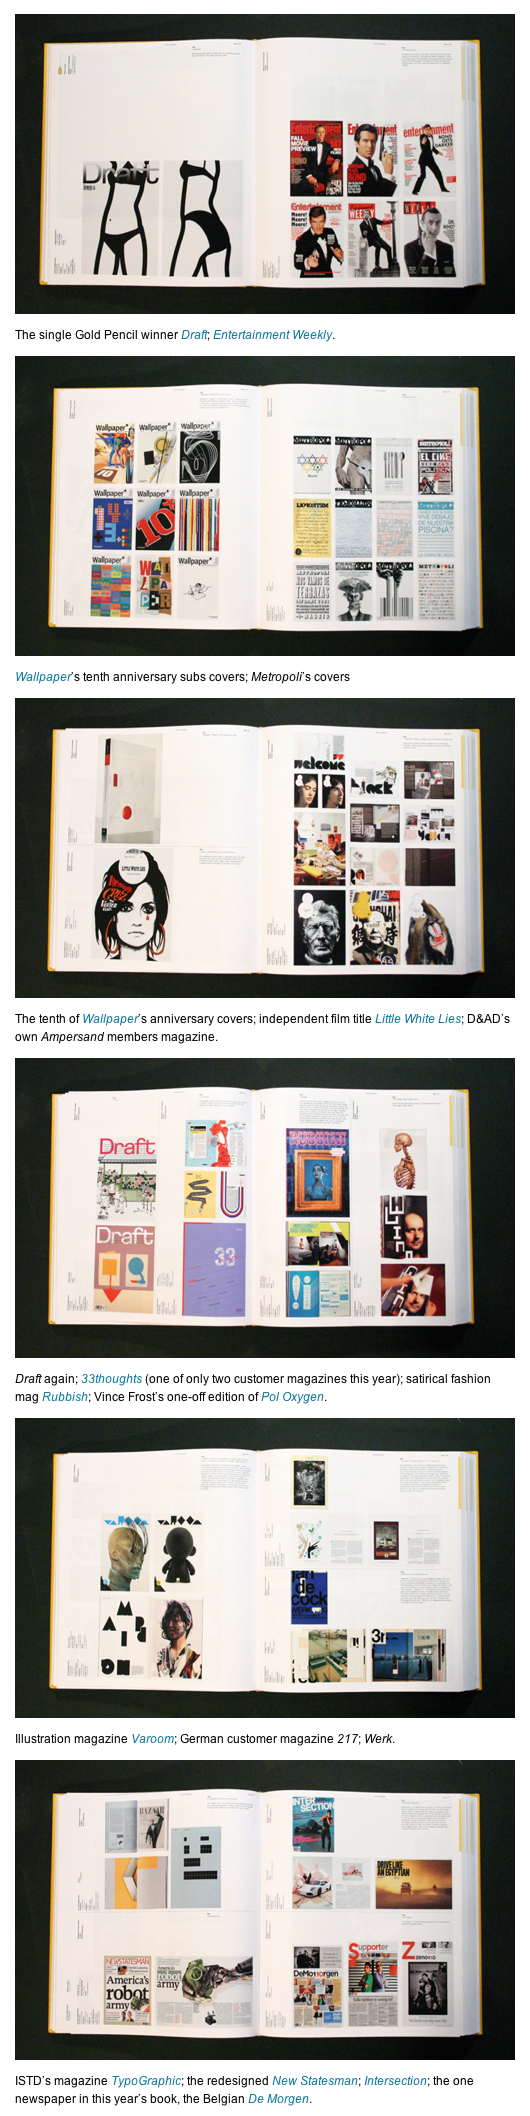 magCulture.com-blog » The best magazines in the world